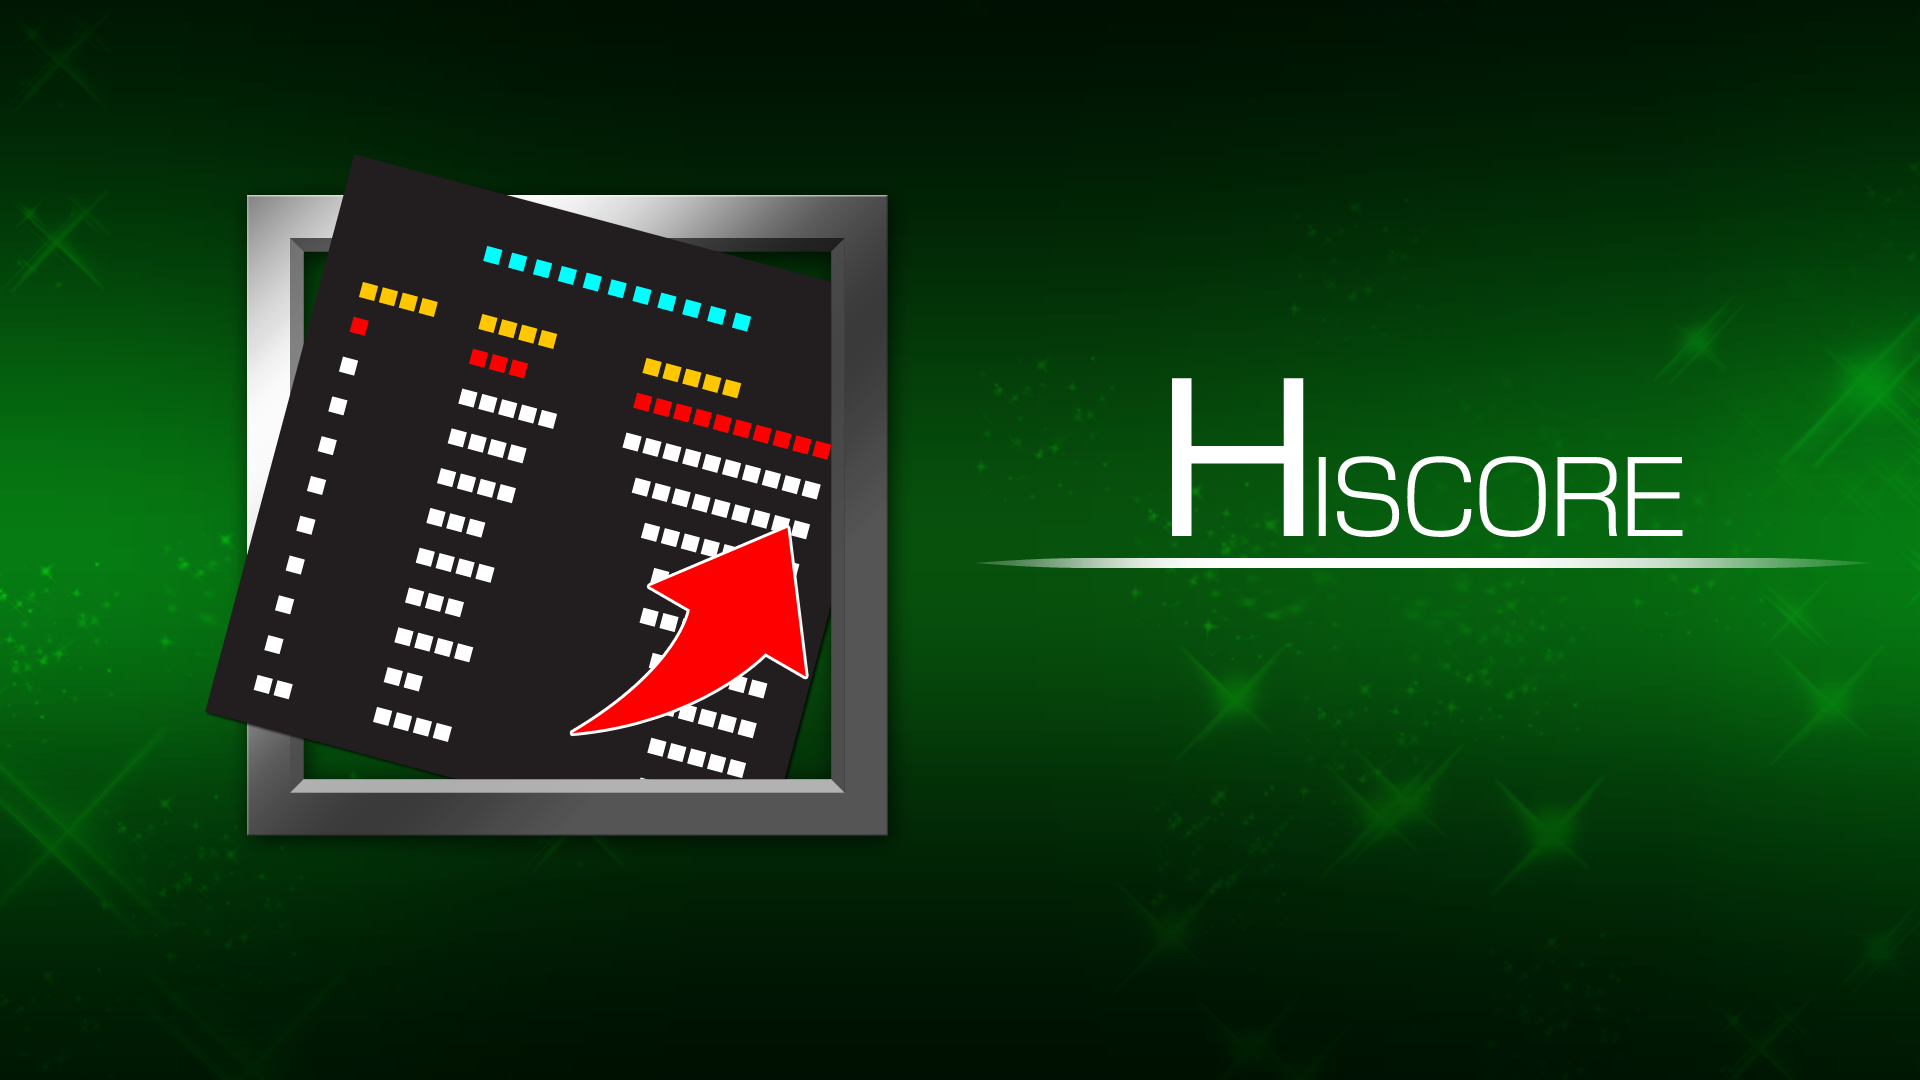 Icon for Mark high score